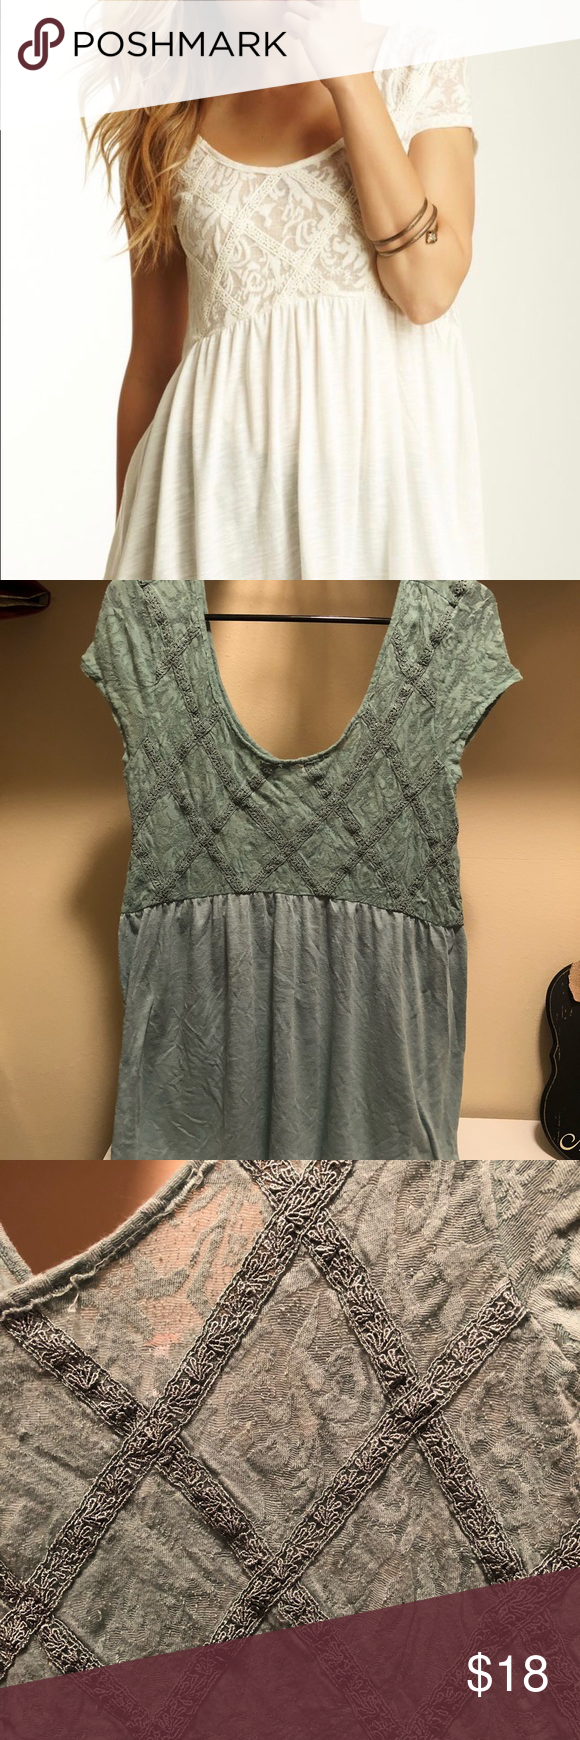 d4ea228878f939 Free People Extreme Babydoll Top- seafoam Washed a few times- we ll taken  care of. Such a cute top on! Size large. Free People Tops Blouses